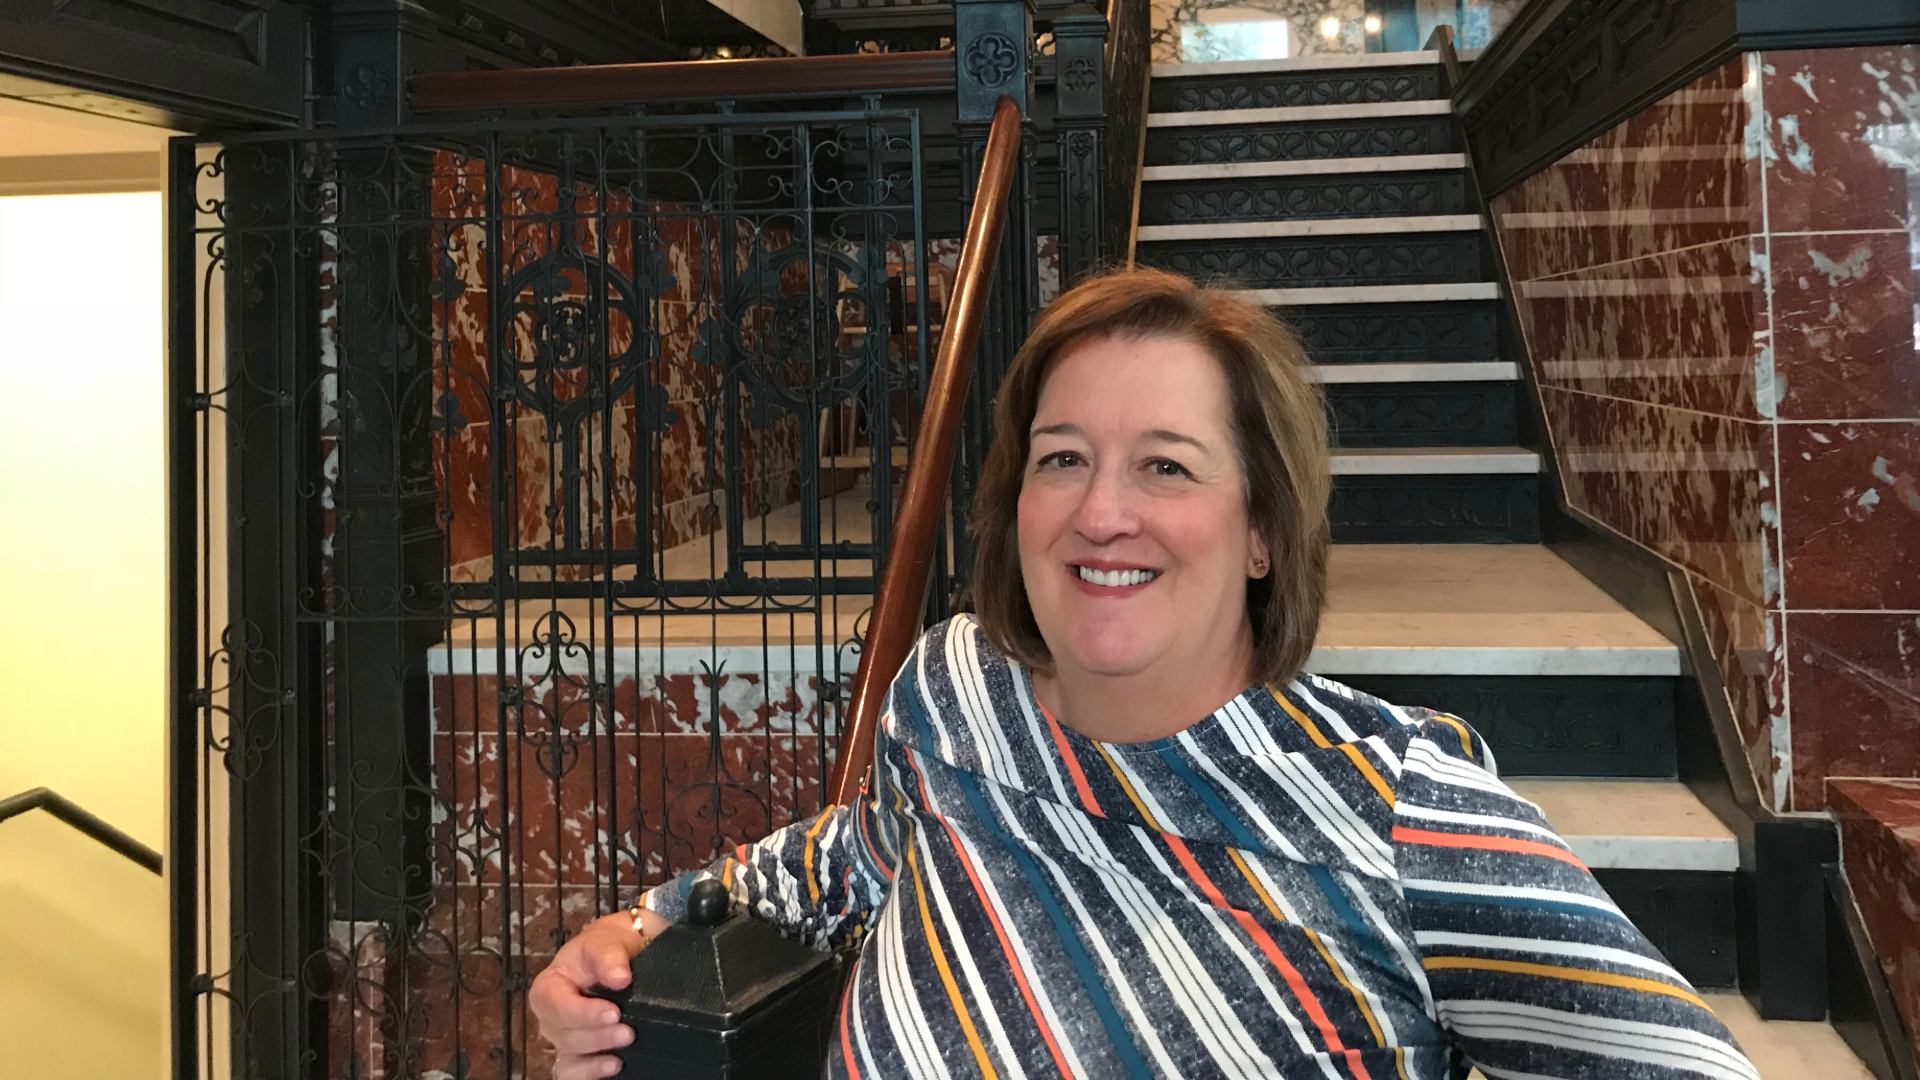 Atrium Health is proud to announce that Martha Whitecotton, RN, MSN, FACHE, senior vice president of Behavioral Health Services, was recognized by Modern Healthcare as one of this year's Top 25 Innovators.